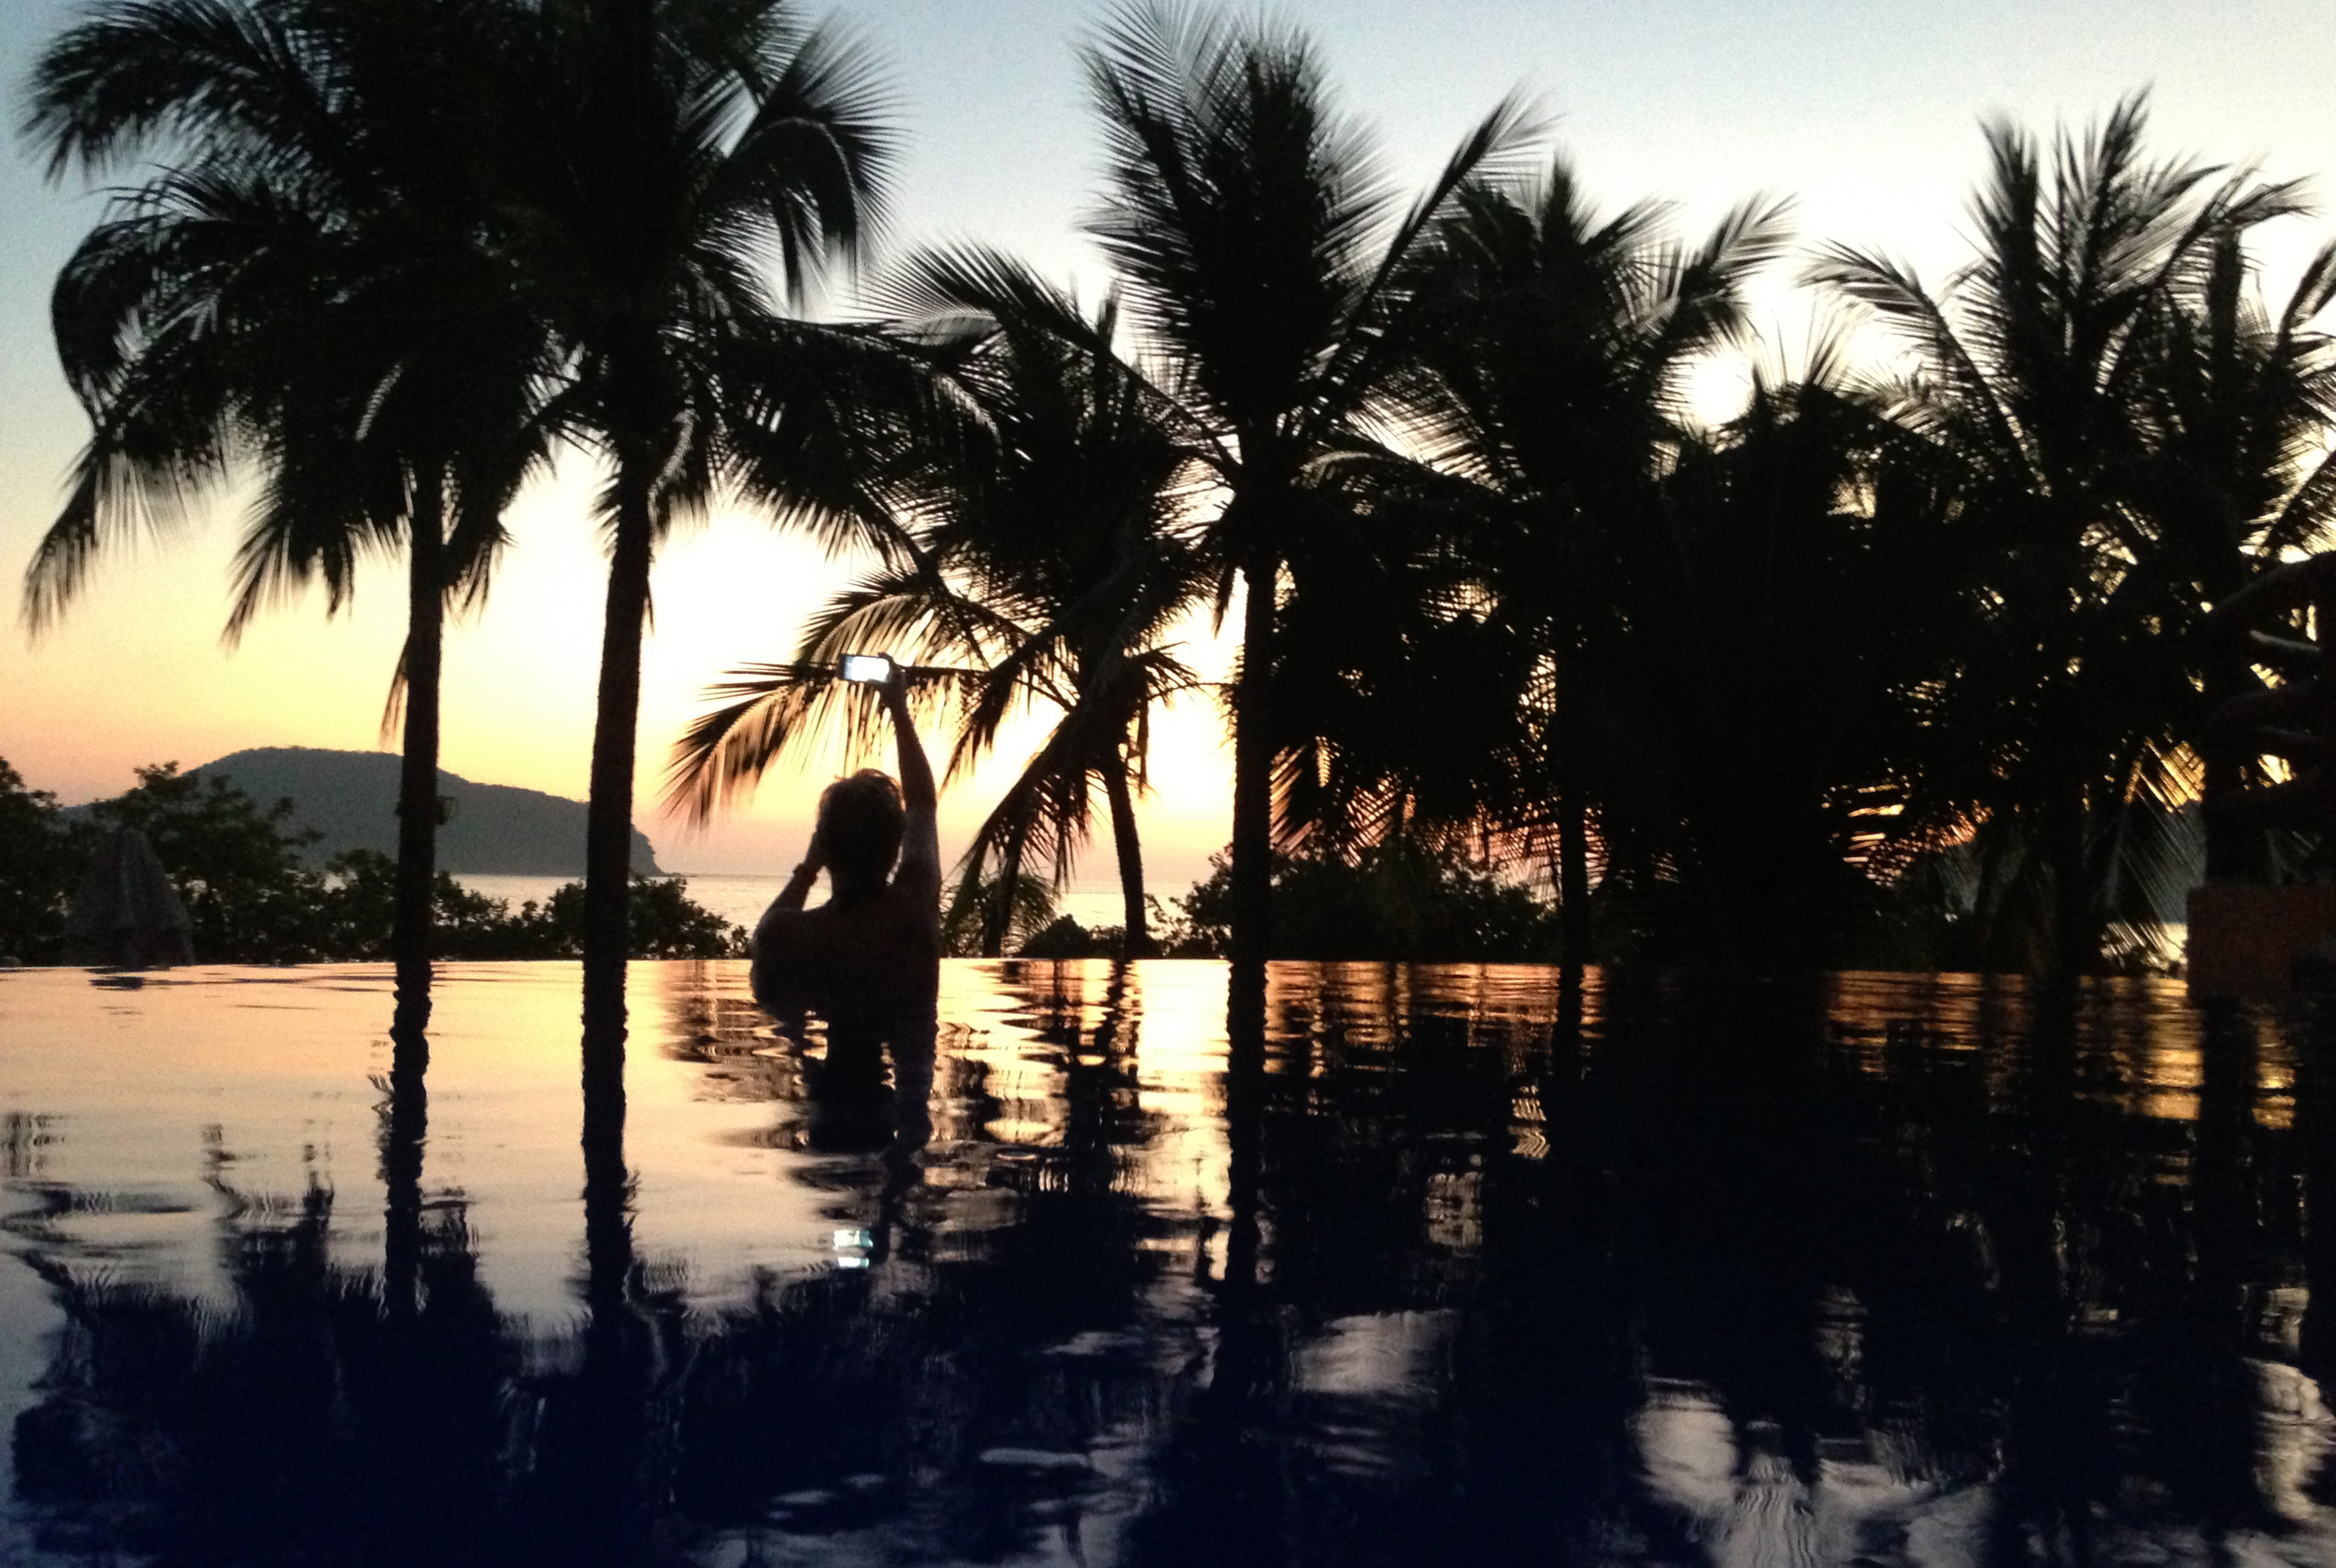 Reflecting palm fronds on a pool of tranquil blue and pink, the perspective plays tricks with one's mind.  Where the infinity pool at Club Intrawest ends, the sea begins, as dusk descends over Playa La Ropa in Zihuatanejo, Mexico. ©Gail Fisher